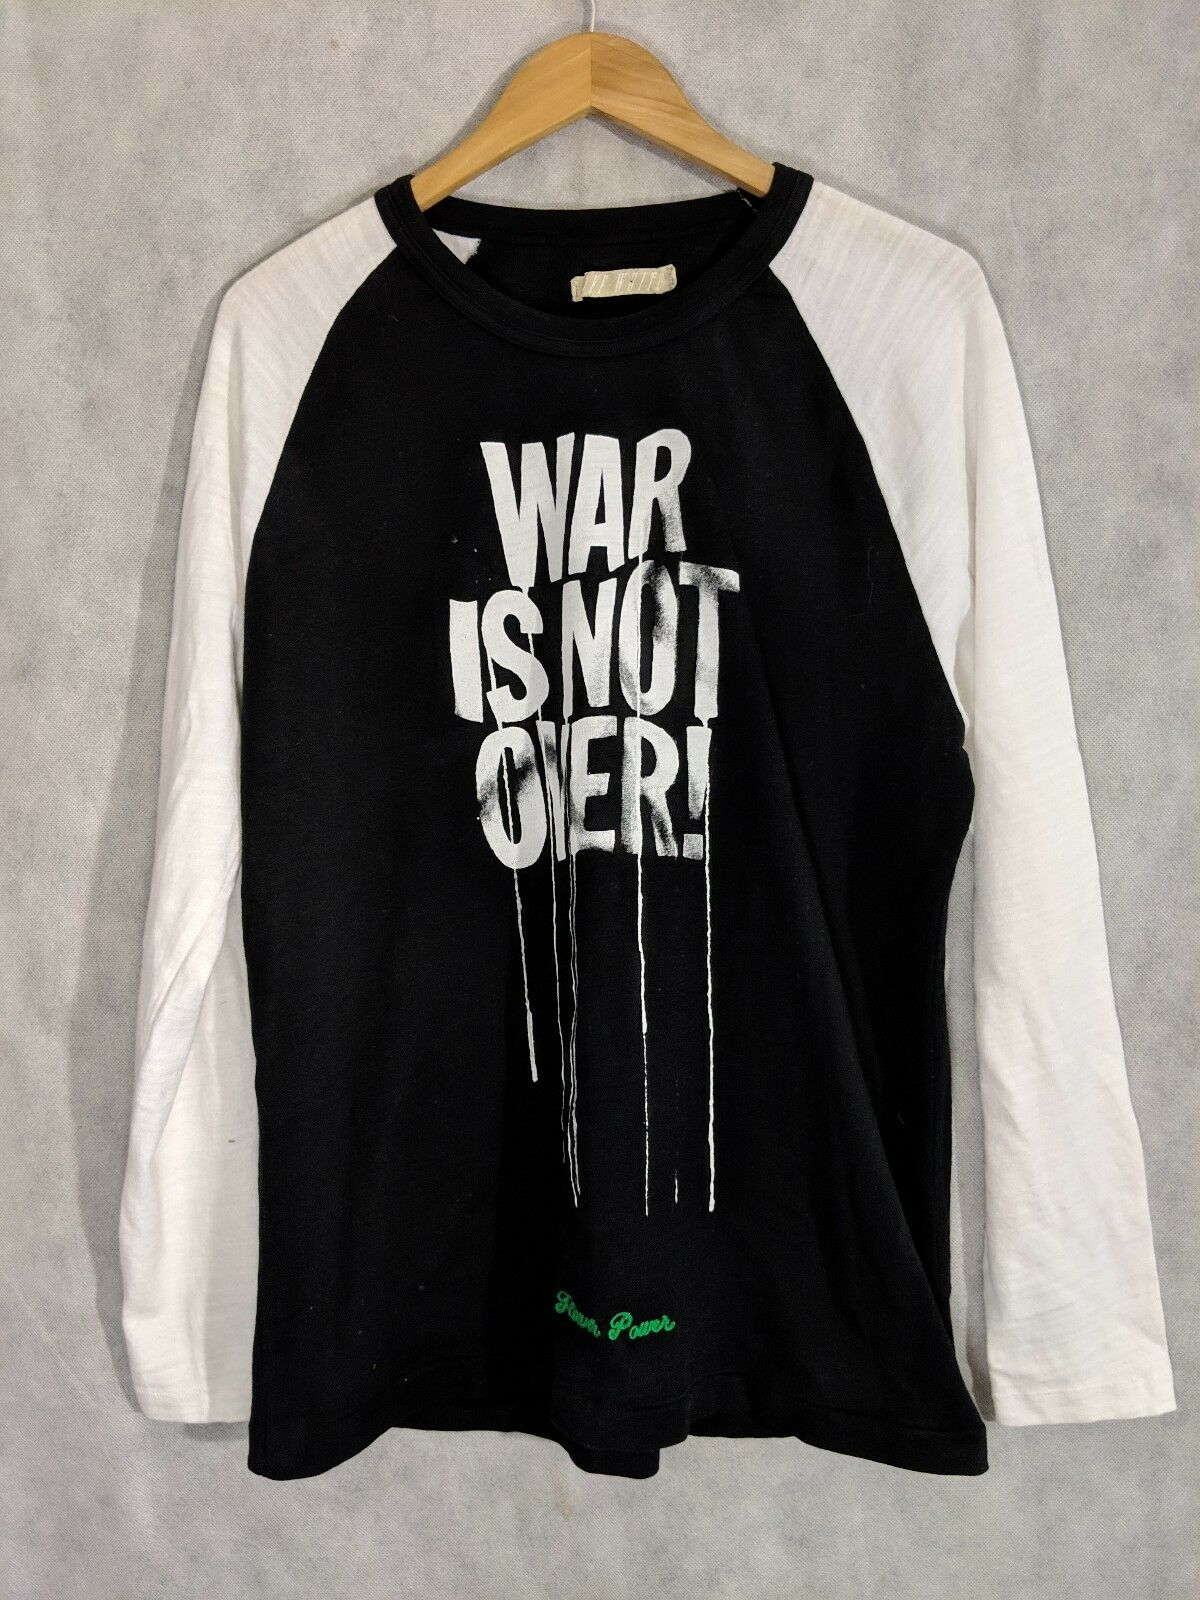 Off White Virgil Abloh FW15 War Is Not Over Paint Splatter Raglan Shirt NWOT XL